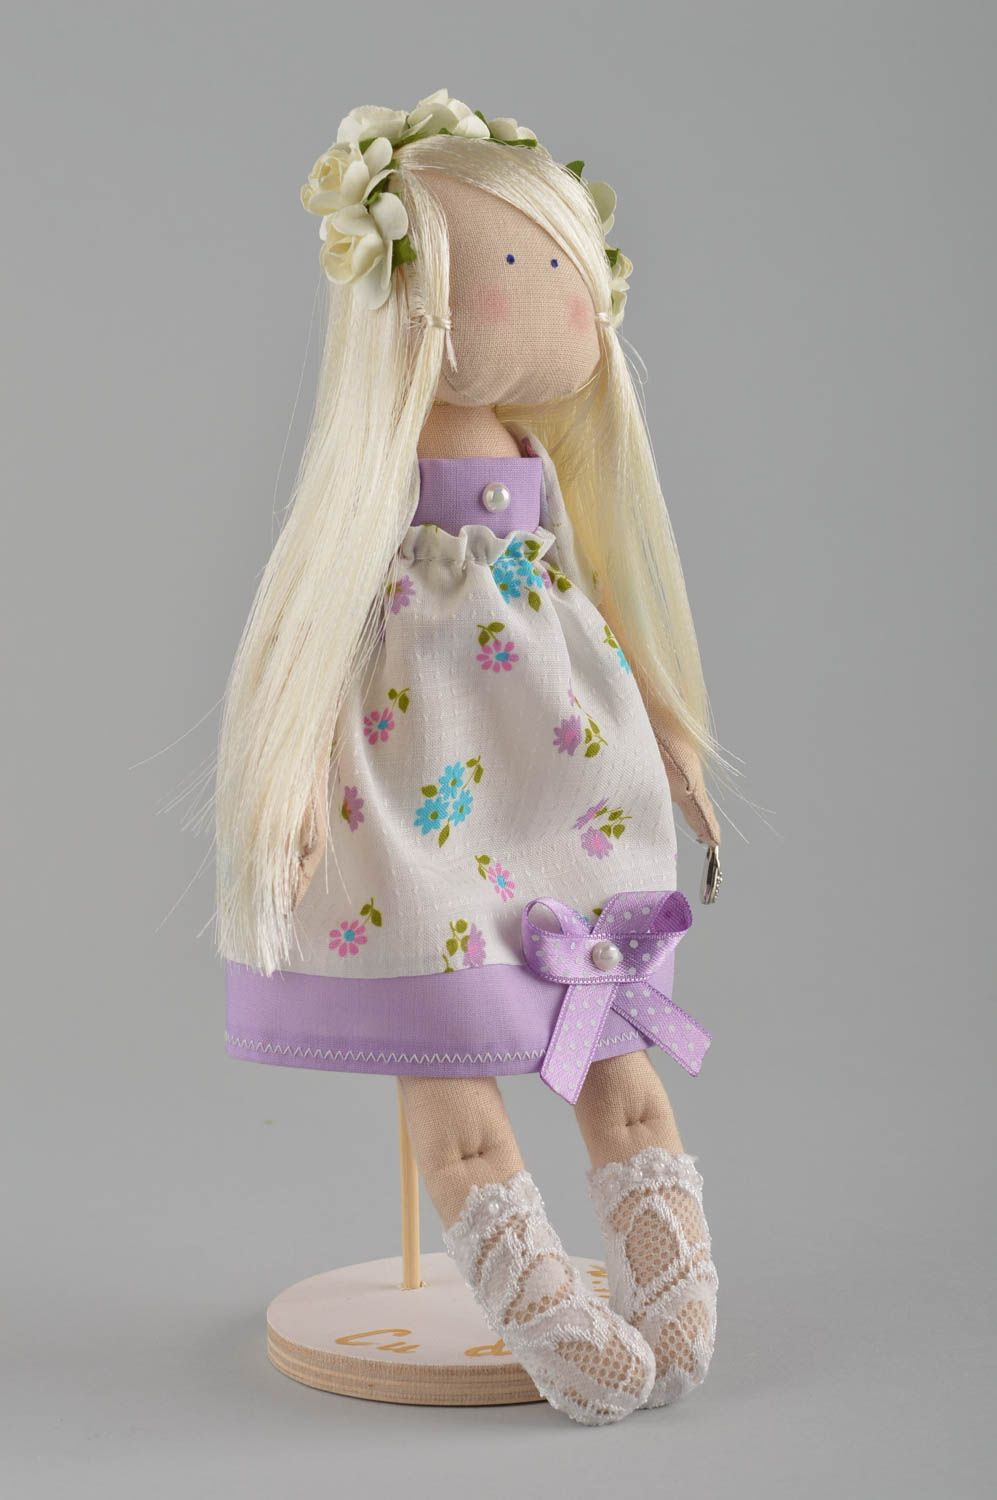 Soft doll handmade girl doll homemade decorations souvenir ideas gifts for her photo 2